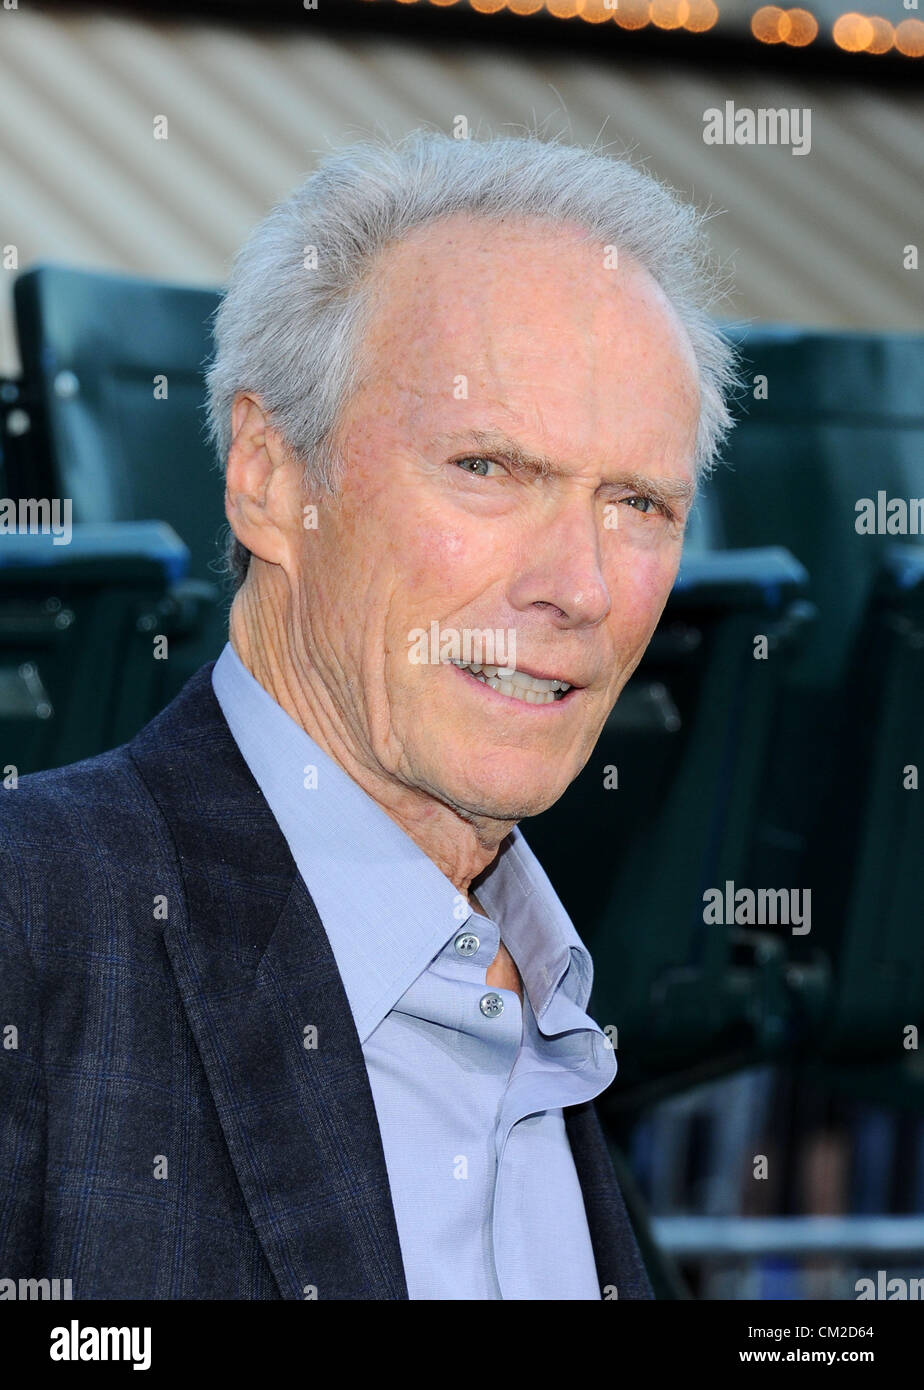 Clint Eastwood at the 'Trouble with the Curve' film premiere in Los Angeles, CA Sept 19th 2012 photo by - Stock Image